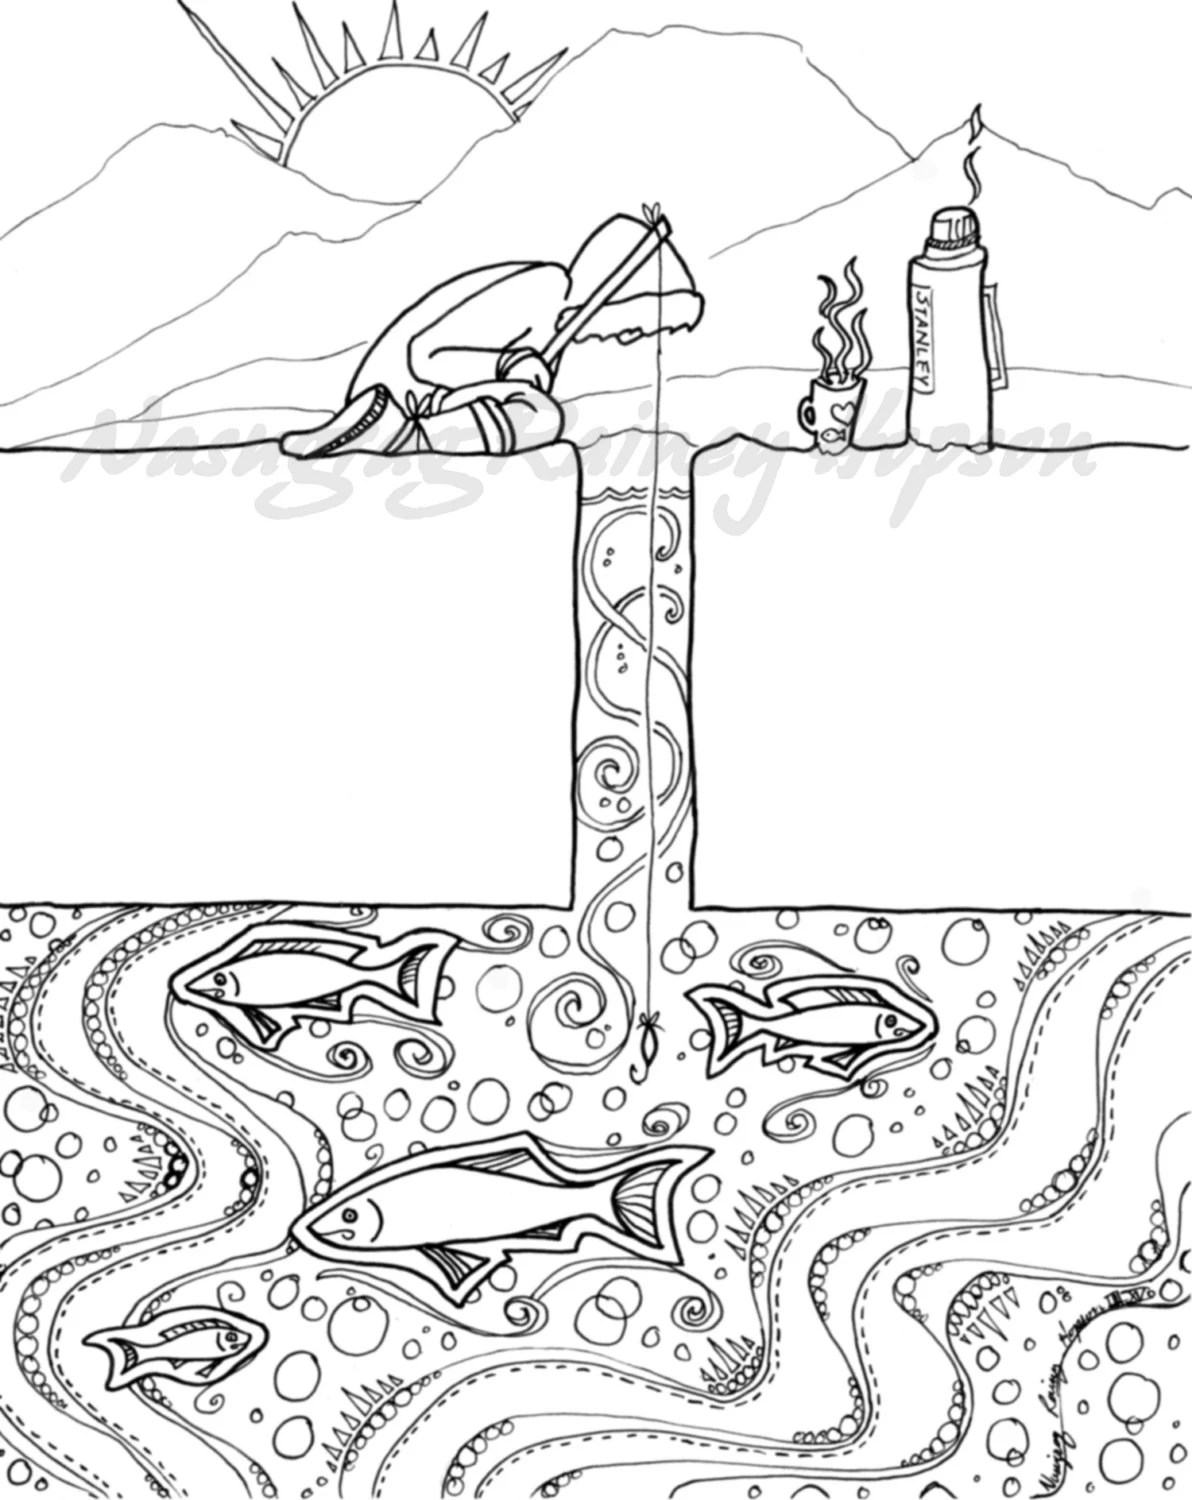 Fishing Lure Coloring Page